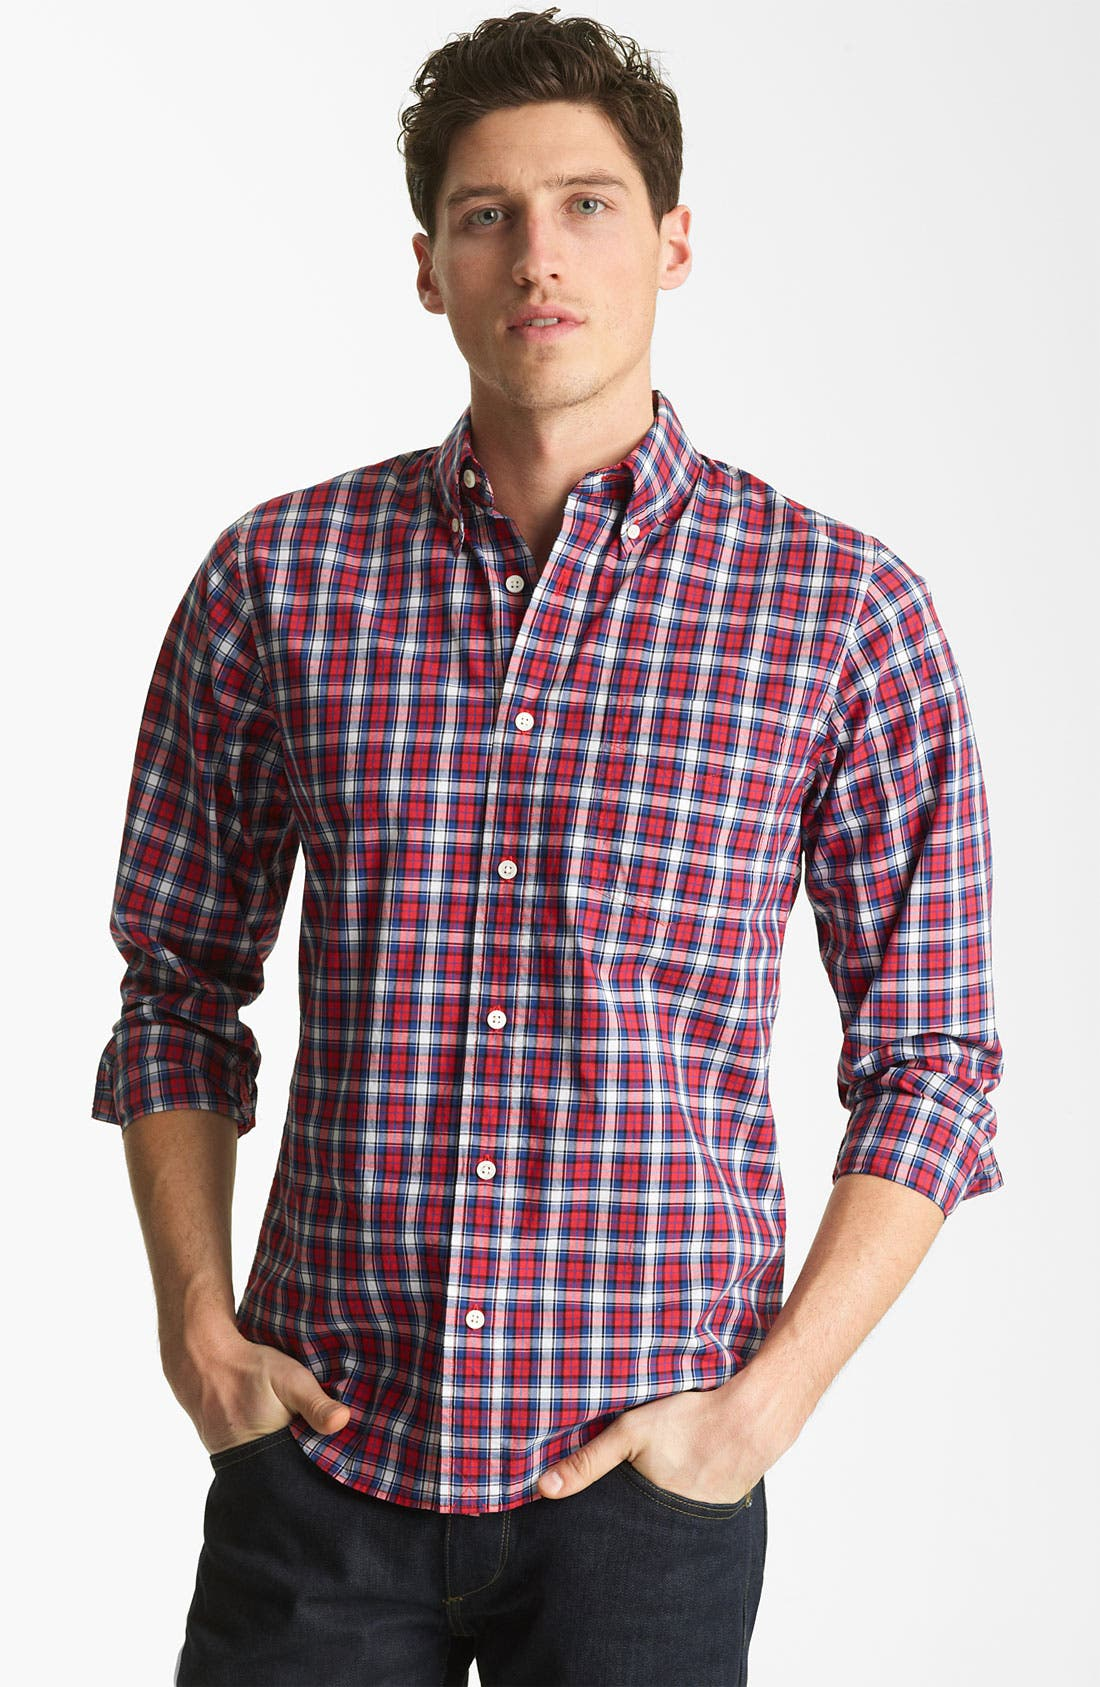 Alternate Image 1 Selected - Jack Spade 'Philips' Plaid Woven Shirt